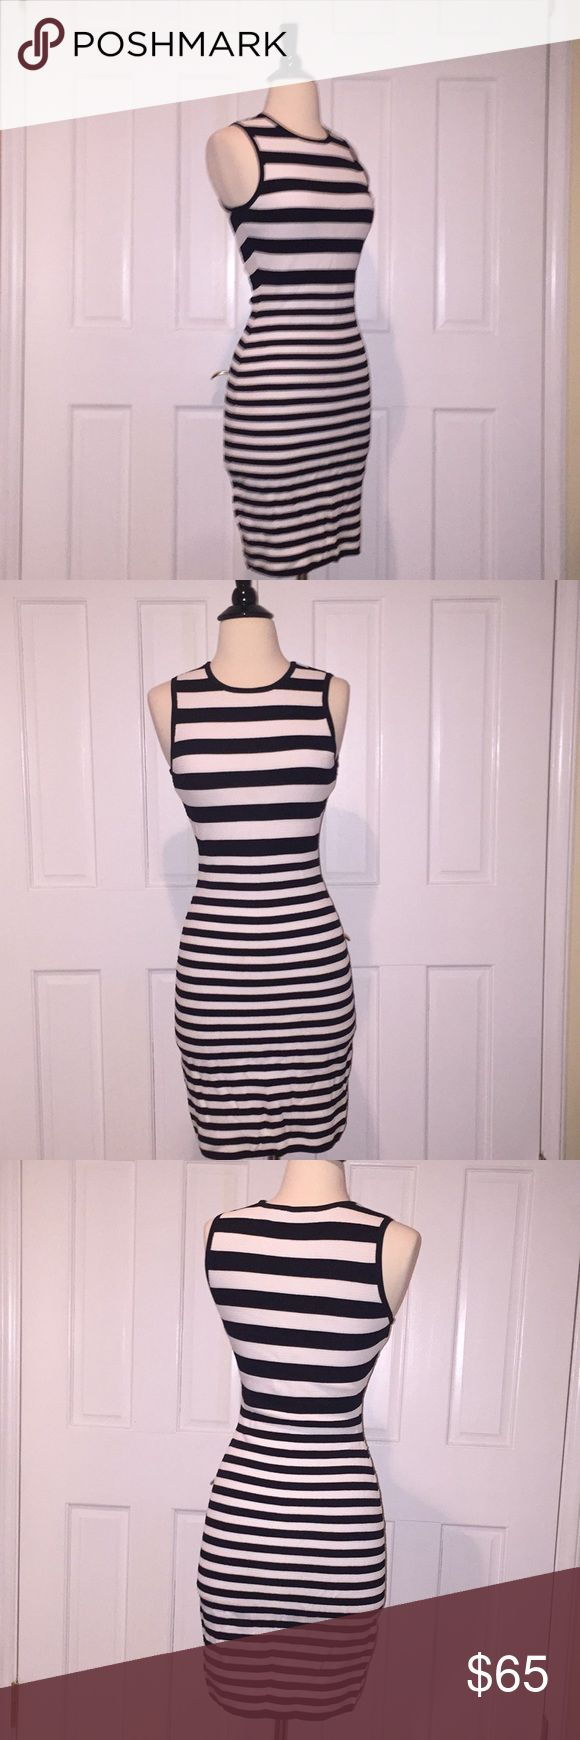 Ali & Jay Los Angeles Striped Bodycon Dress Bought from Nordstrom. Gorgeous dress. Stretch material for the best fit. Size small ali & jay Dresses Mini